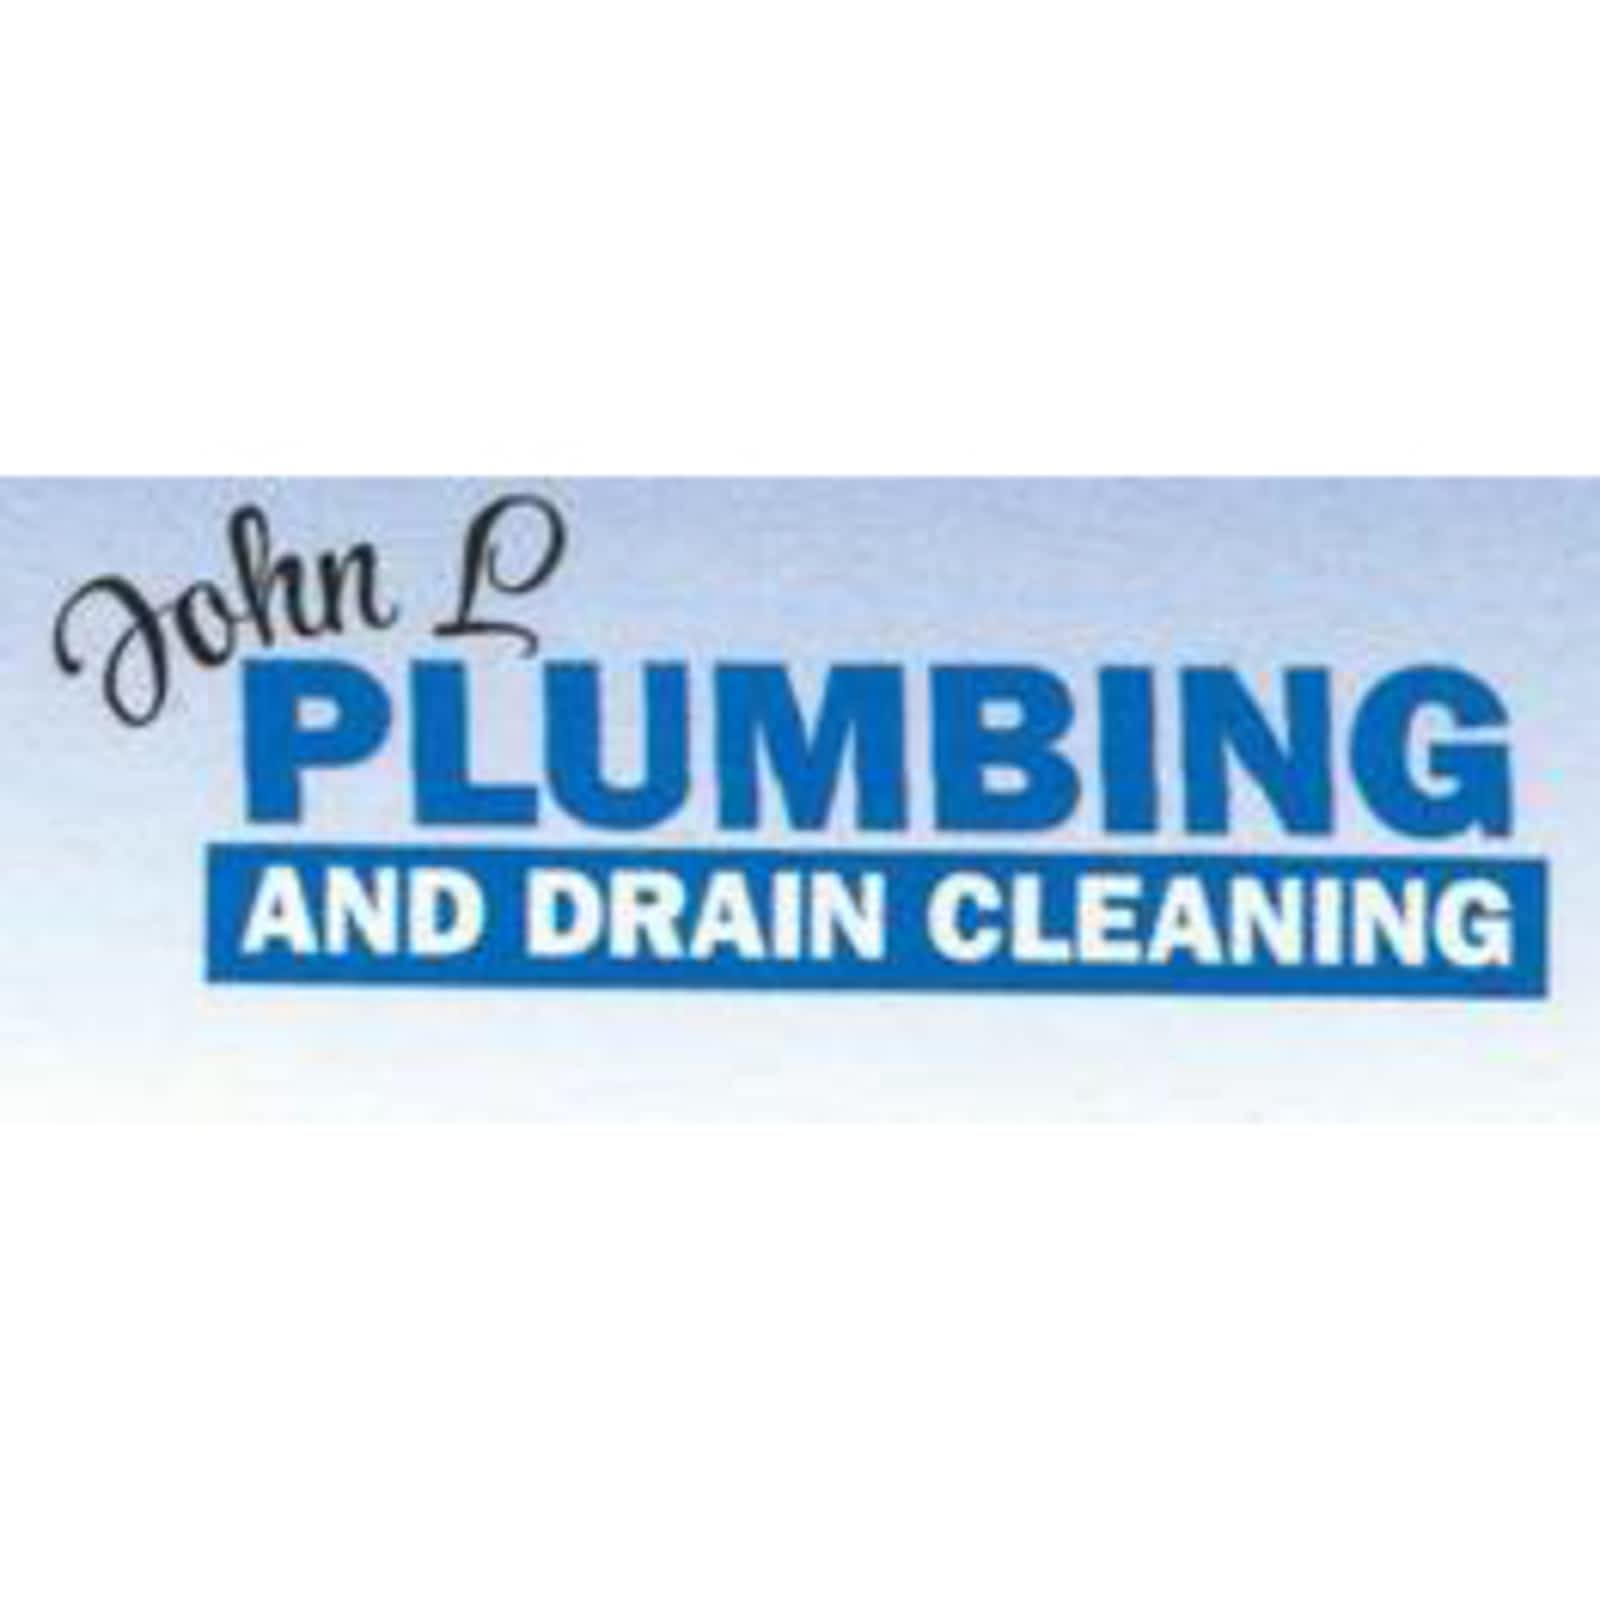 John L Plumbing and Drain Cleaning - Opening Hours - 152 Northview ...